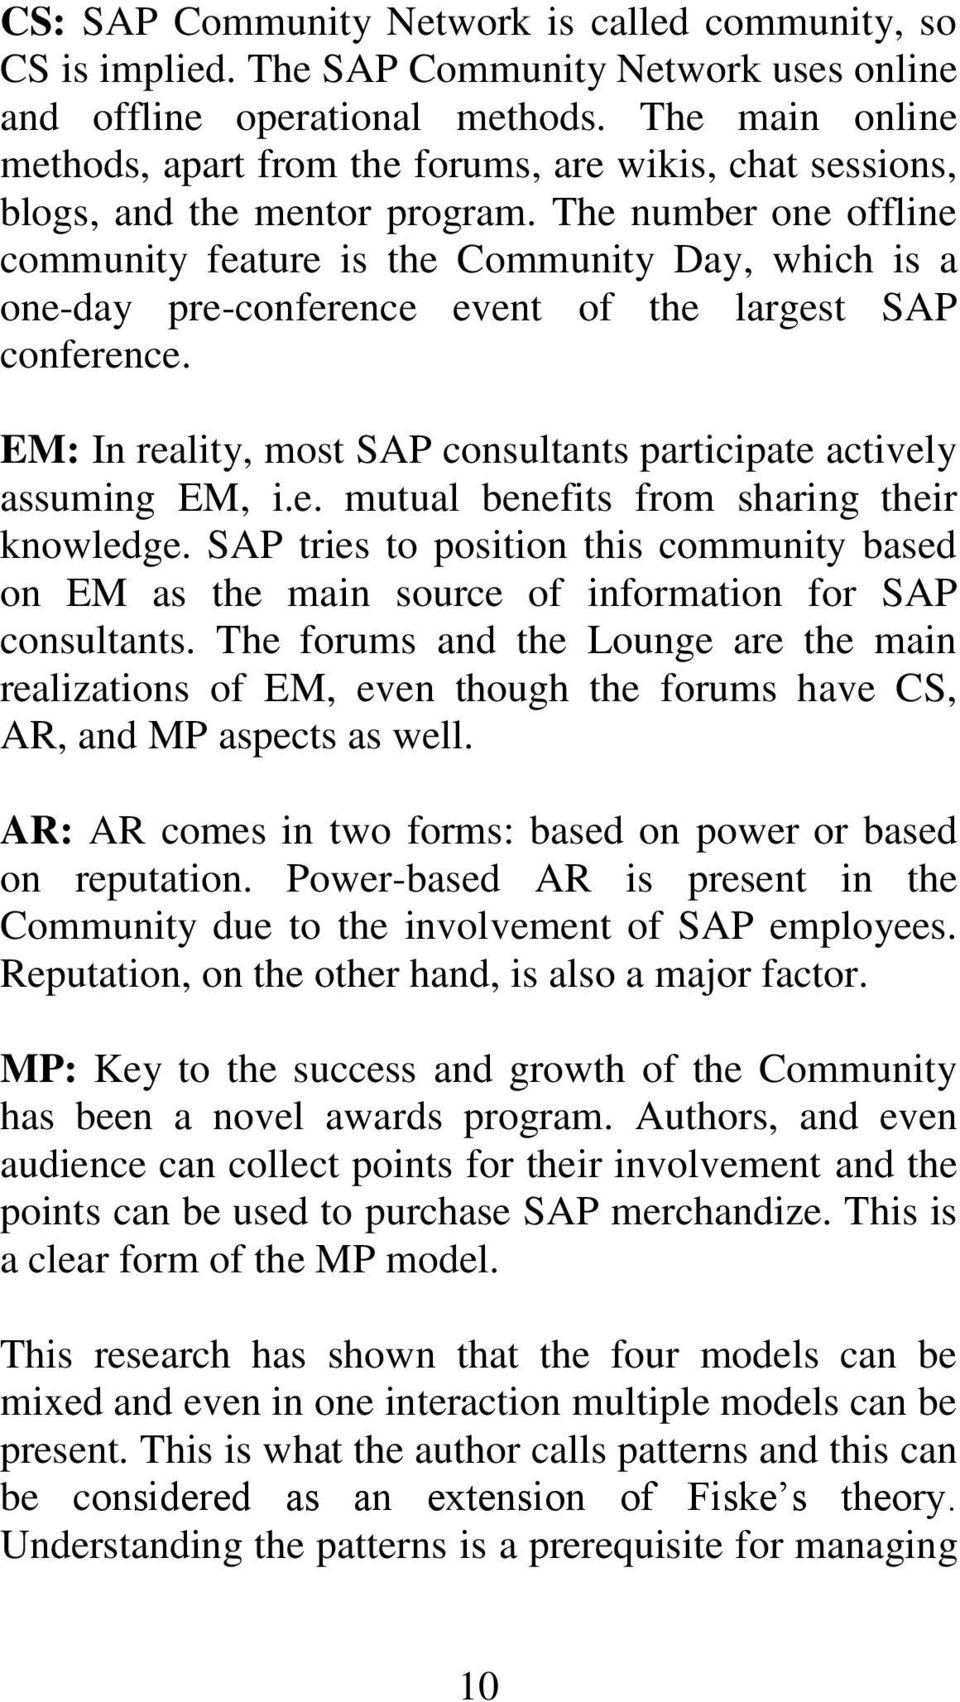 The number one offline community feature is the Community Day, which is a one-day pre-conference event of the largest SAP conference.